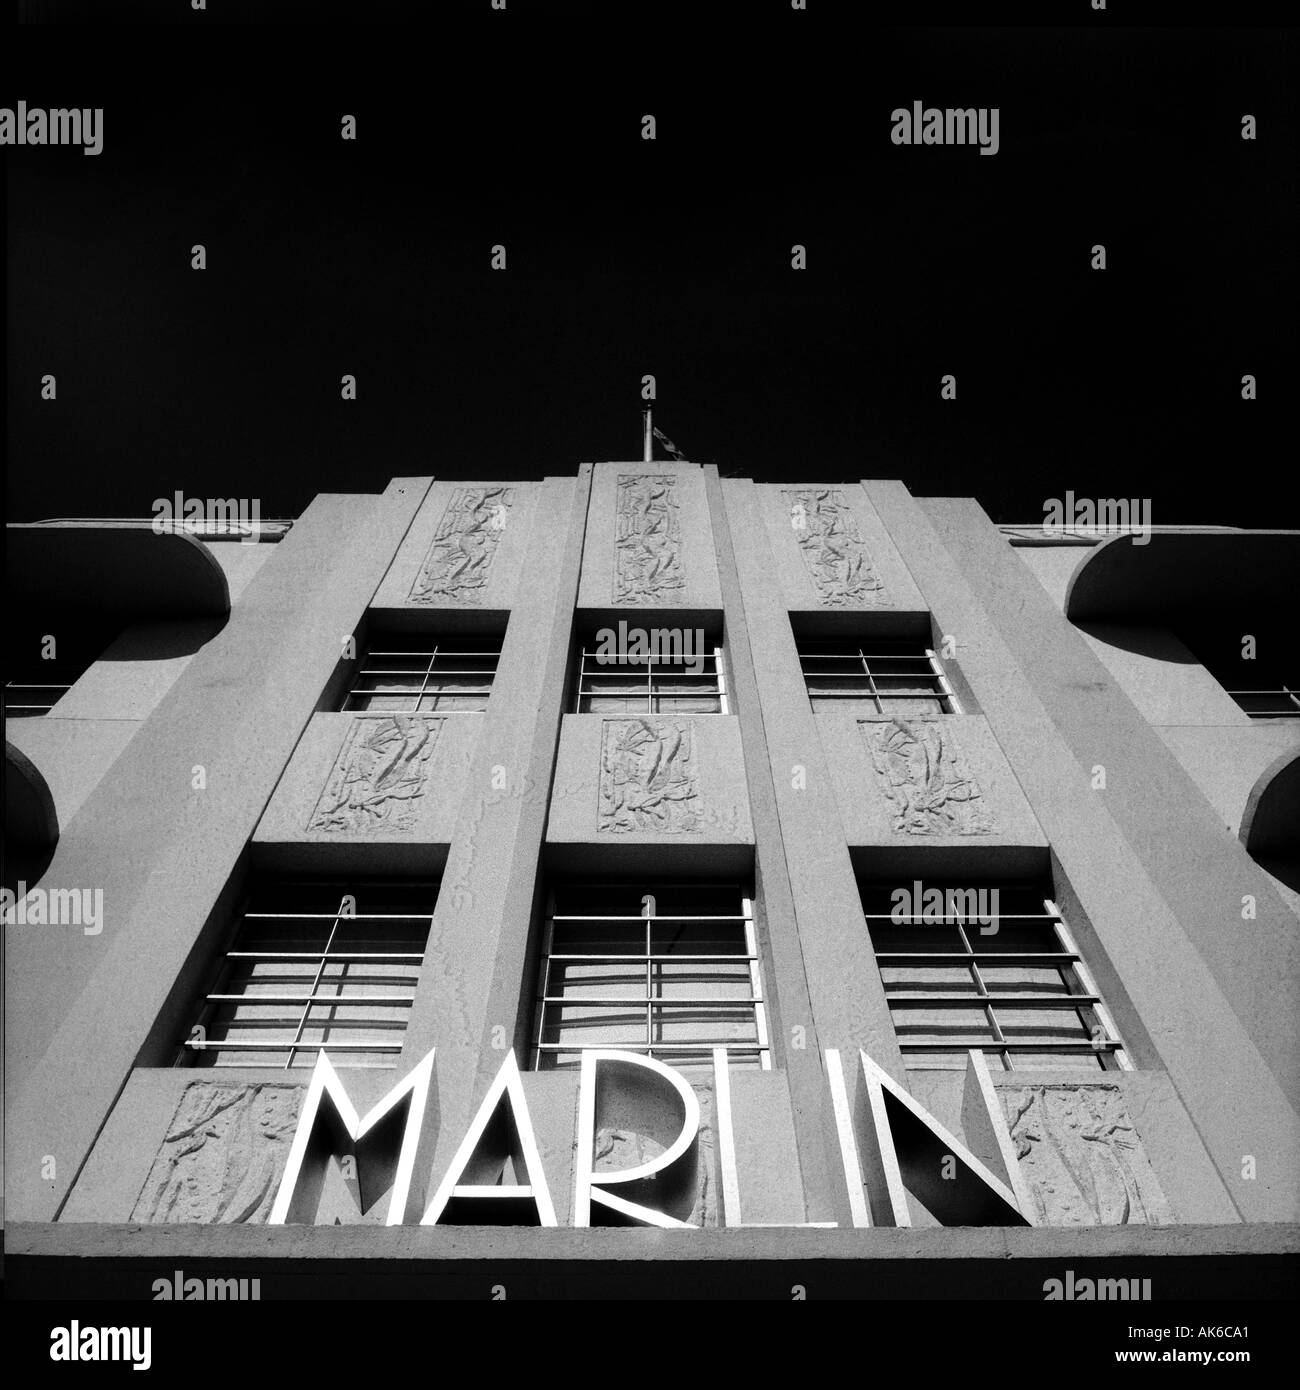 Fachada de la Marlin hotel en Miami Distrito Art Deco de South Beach Foto de stock